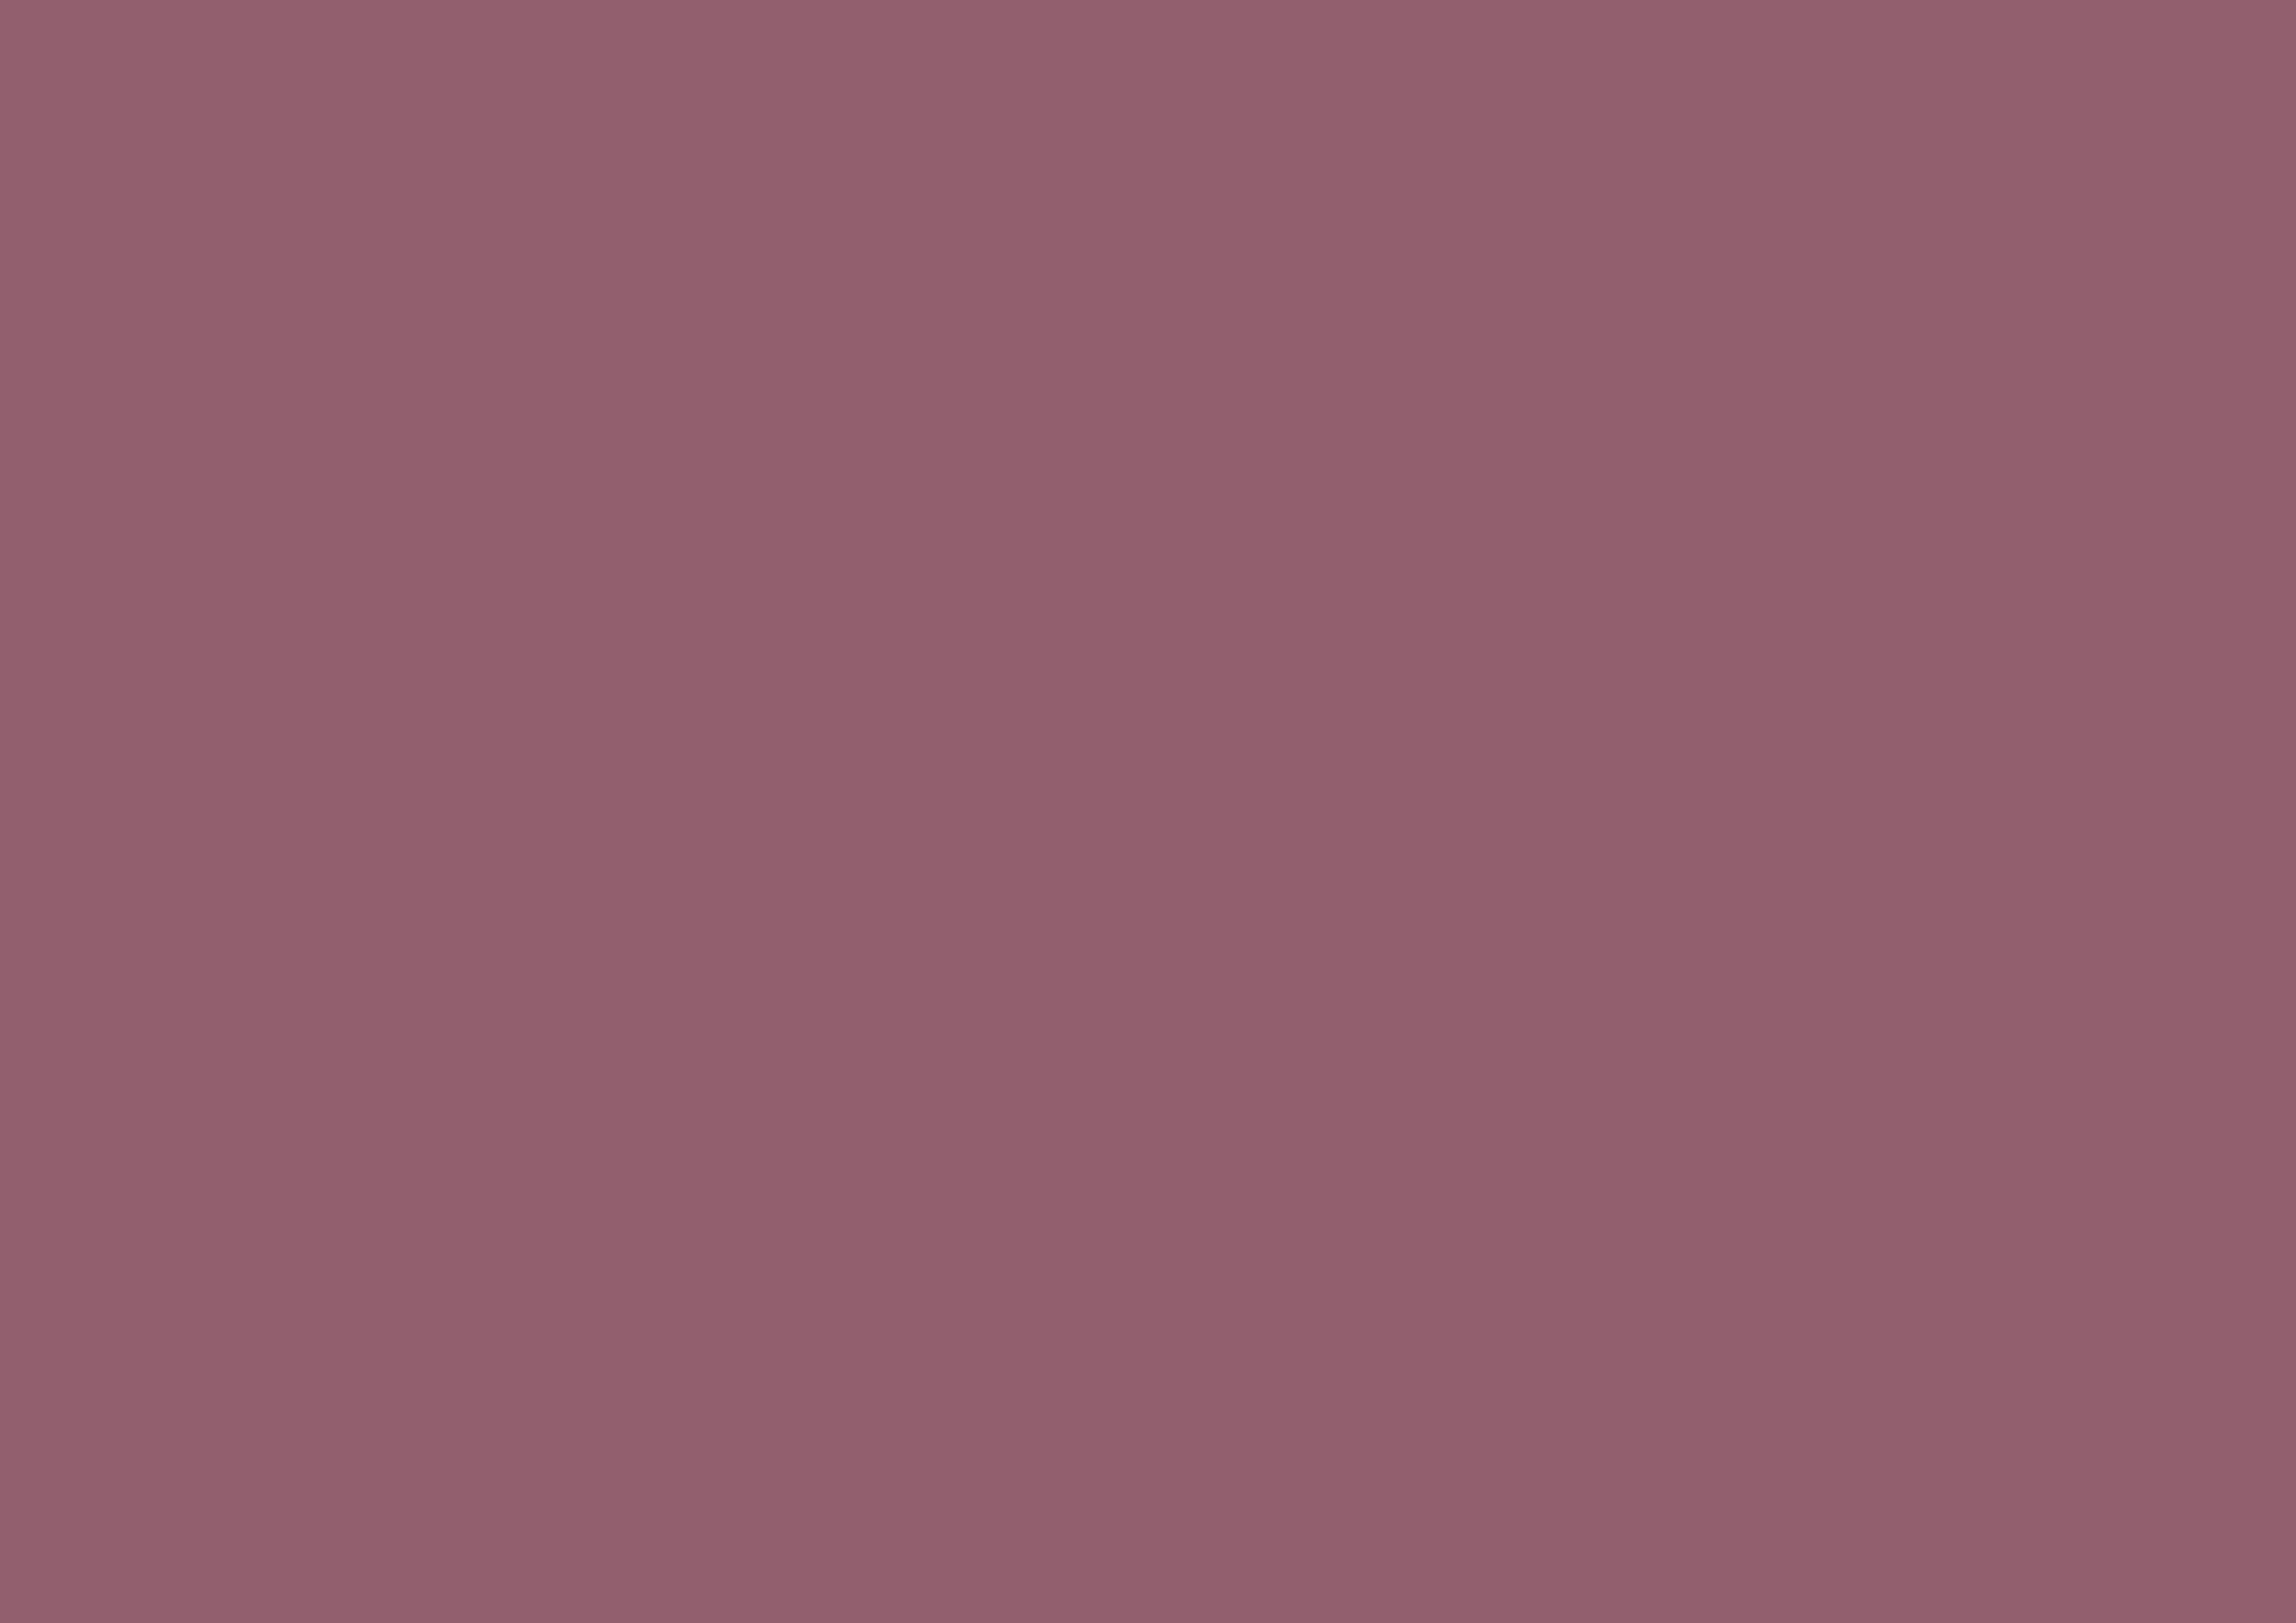 3508x2480 Mauve Taupe Solid Color Background